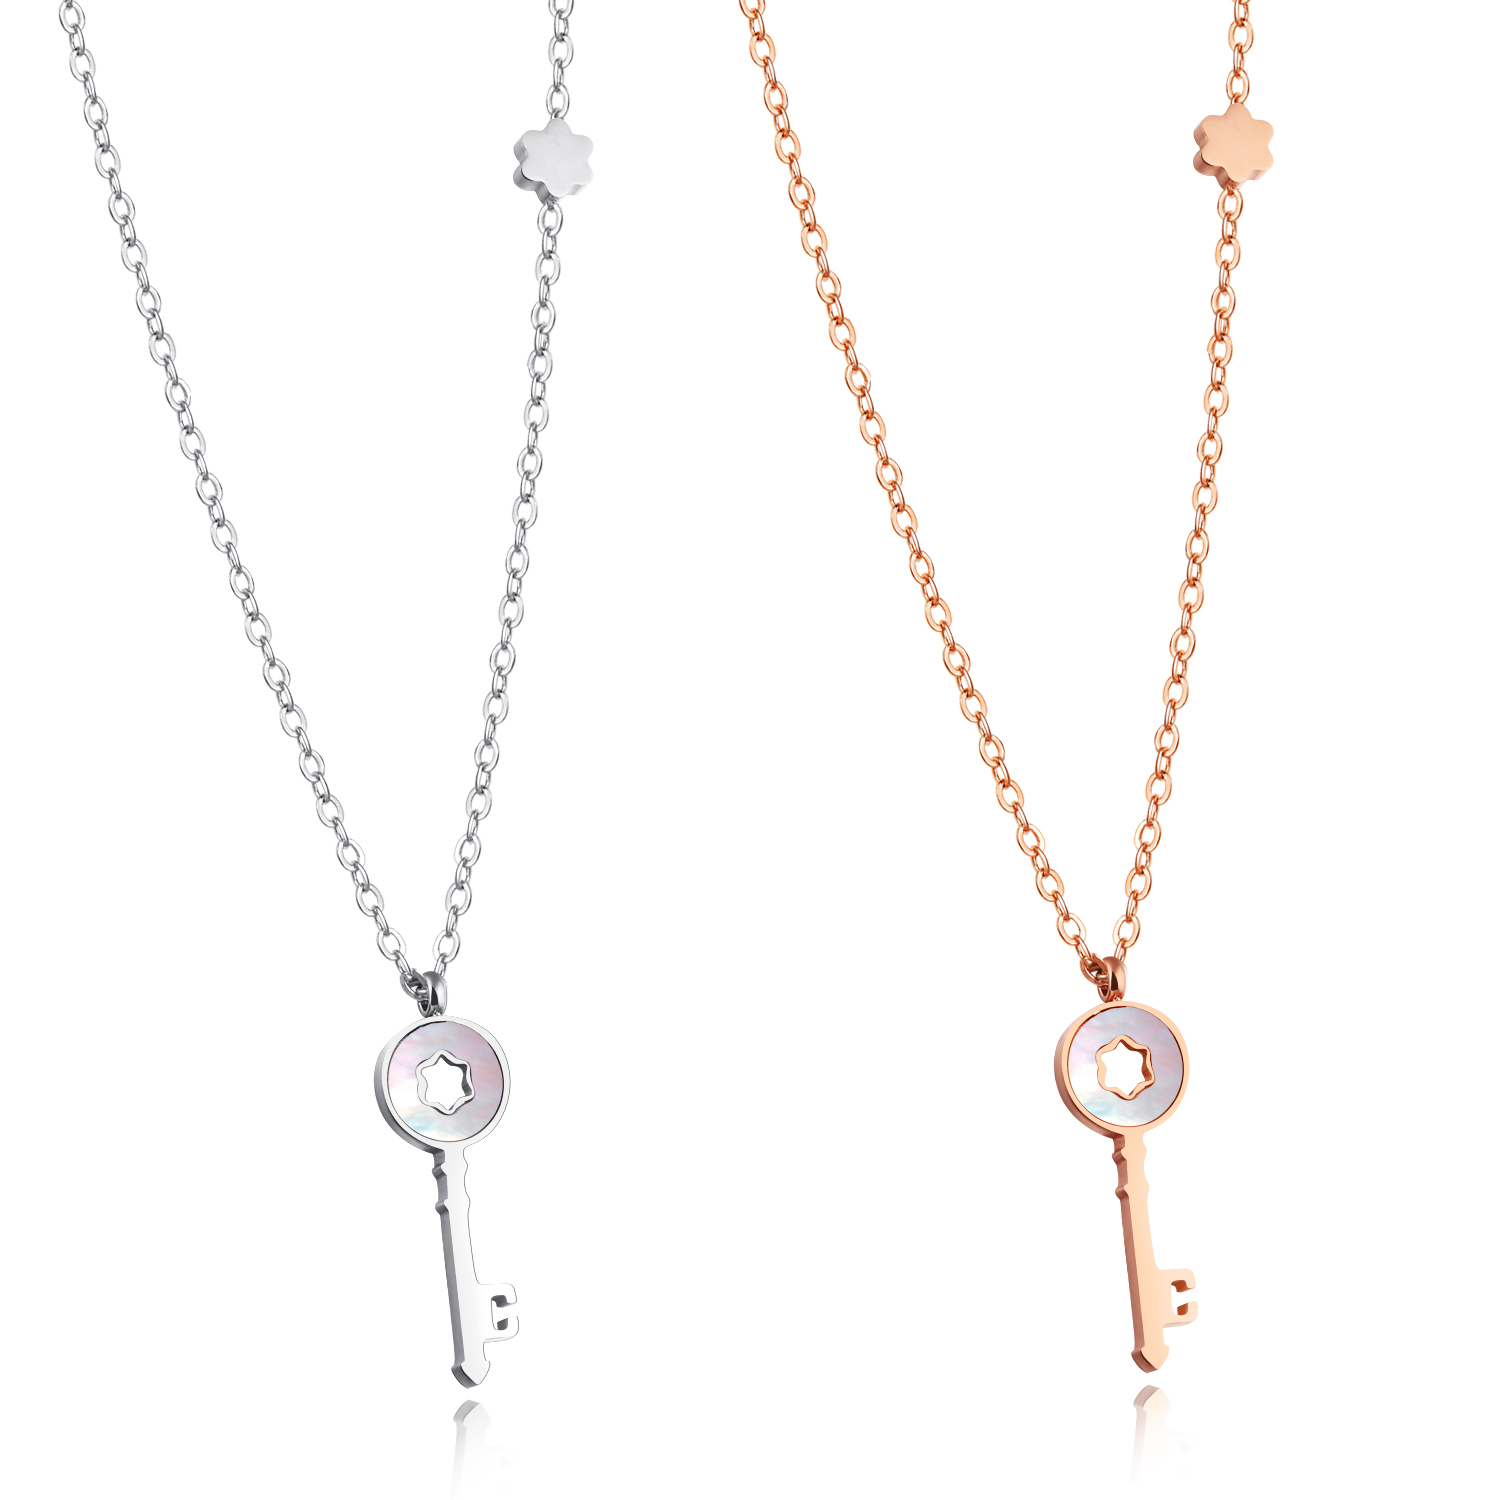 Fashion Jewelry Female Link Chain Accessories Trendy Charm